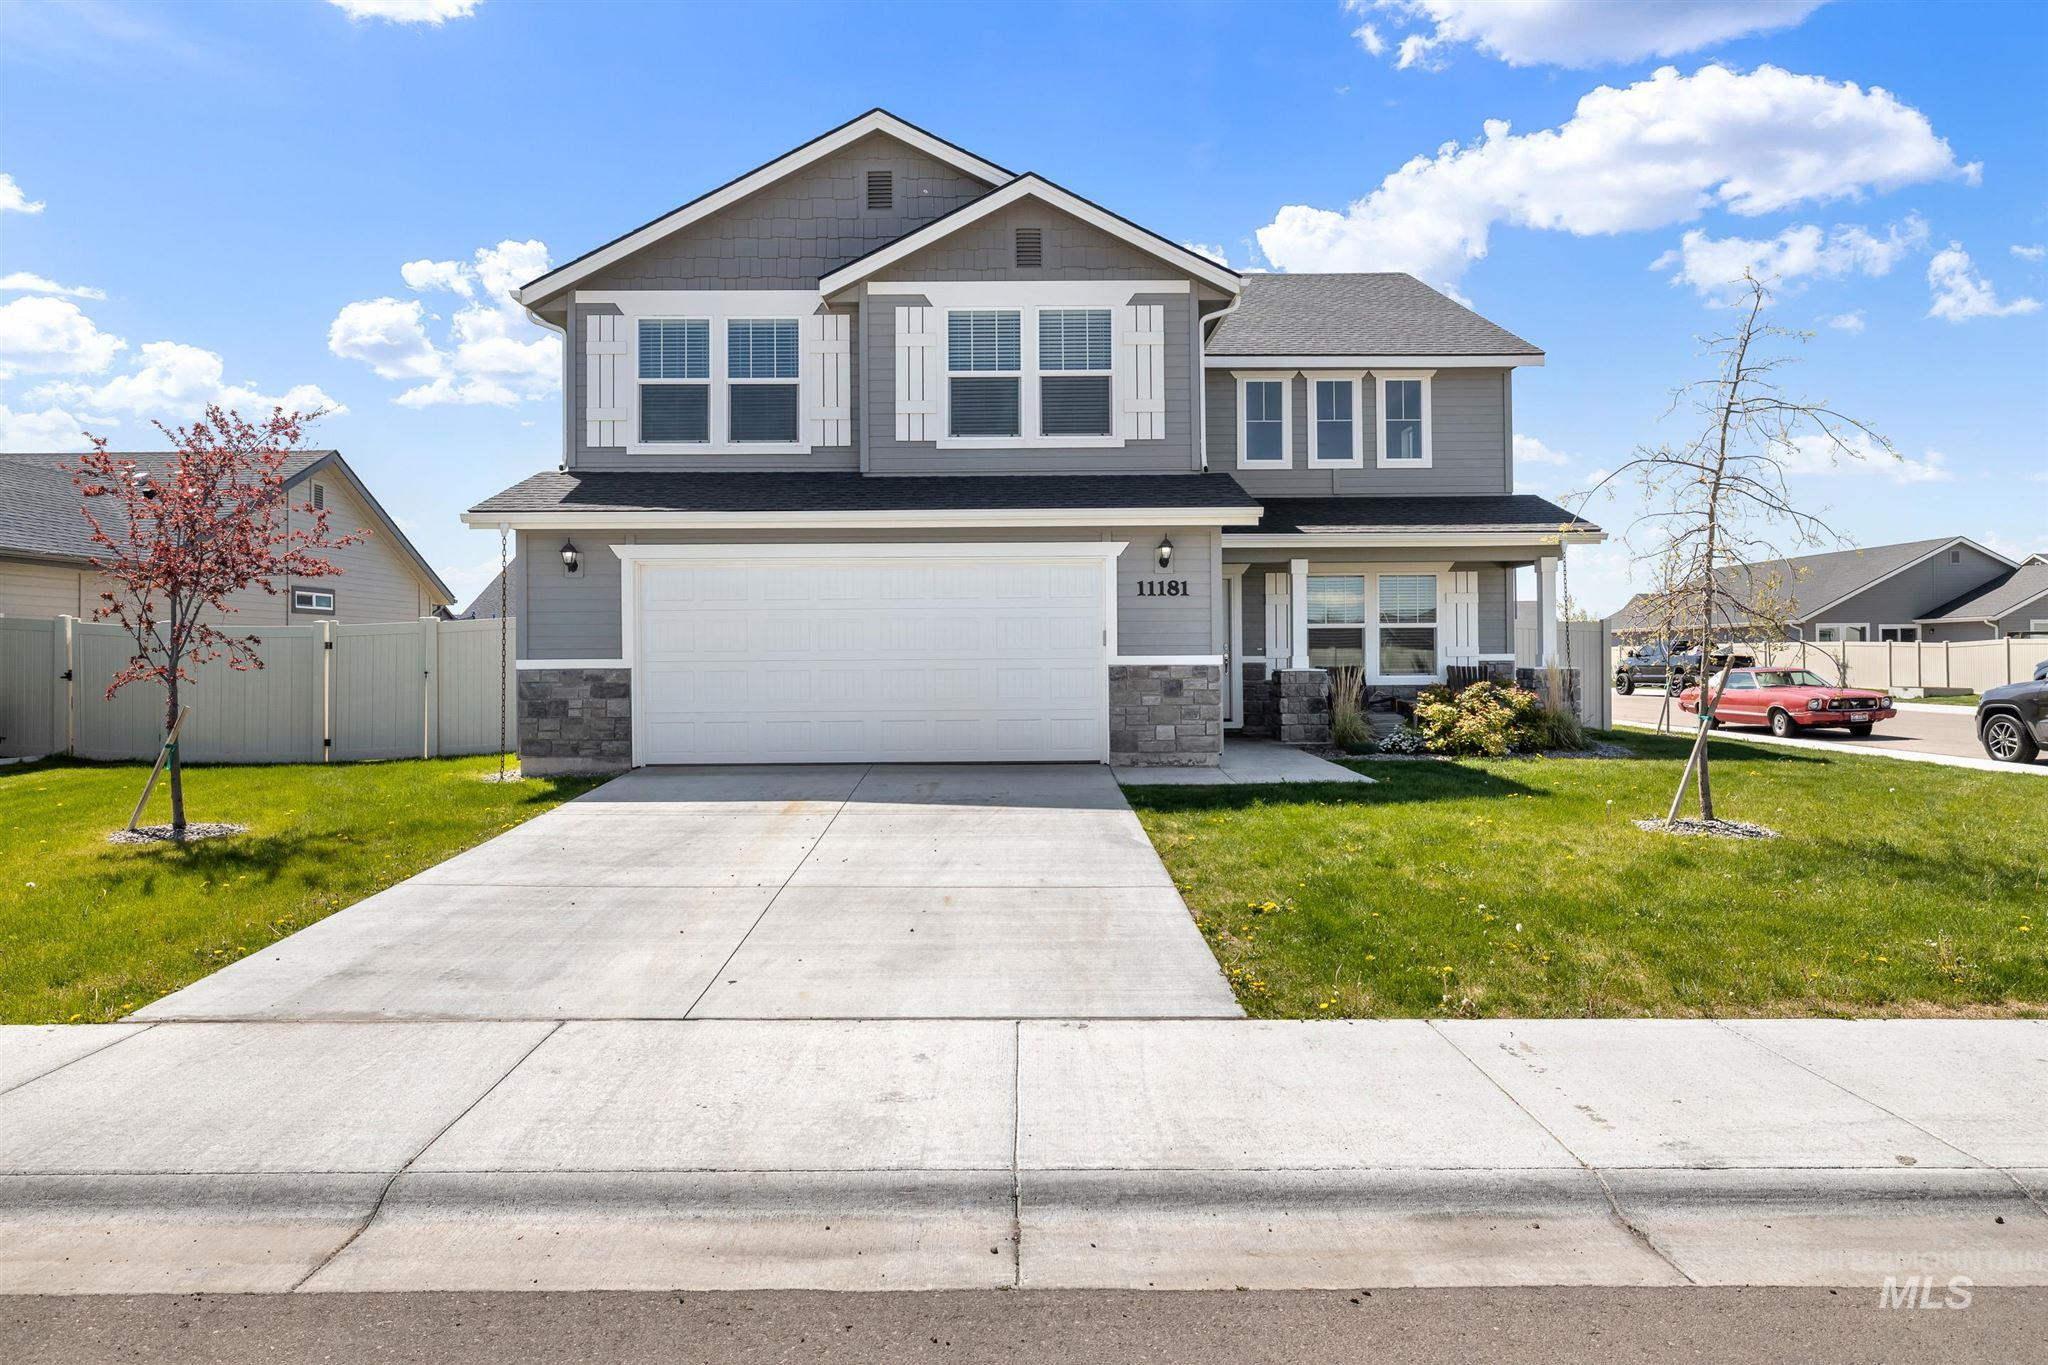 11181 W Hobby St. Property Photo - Nampa, ID real estate listing